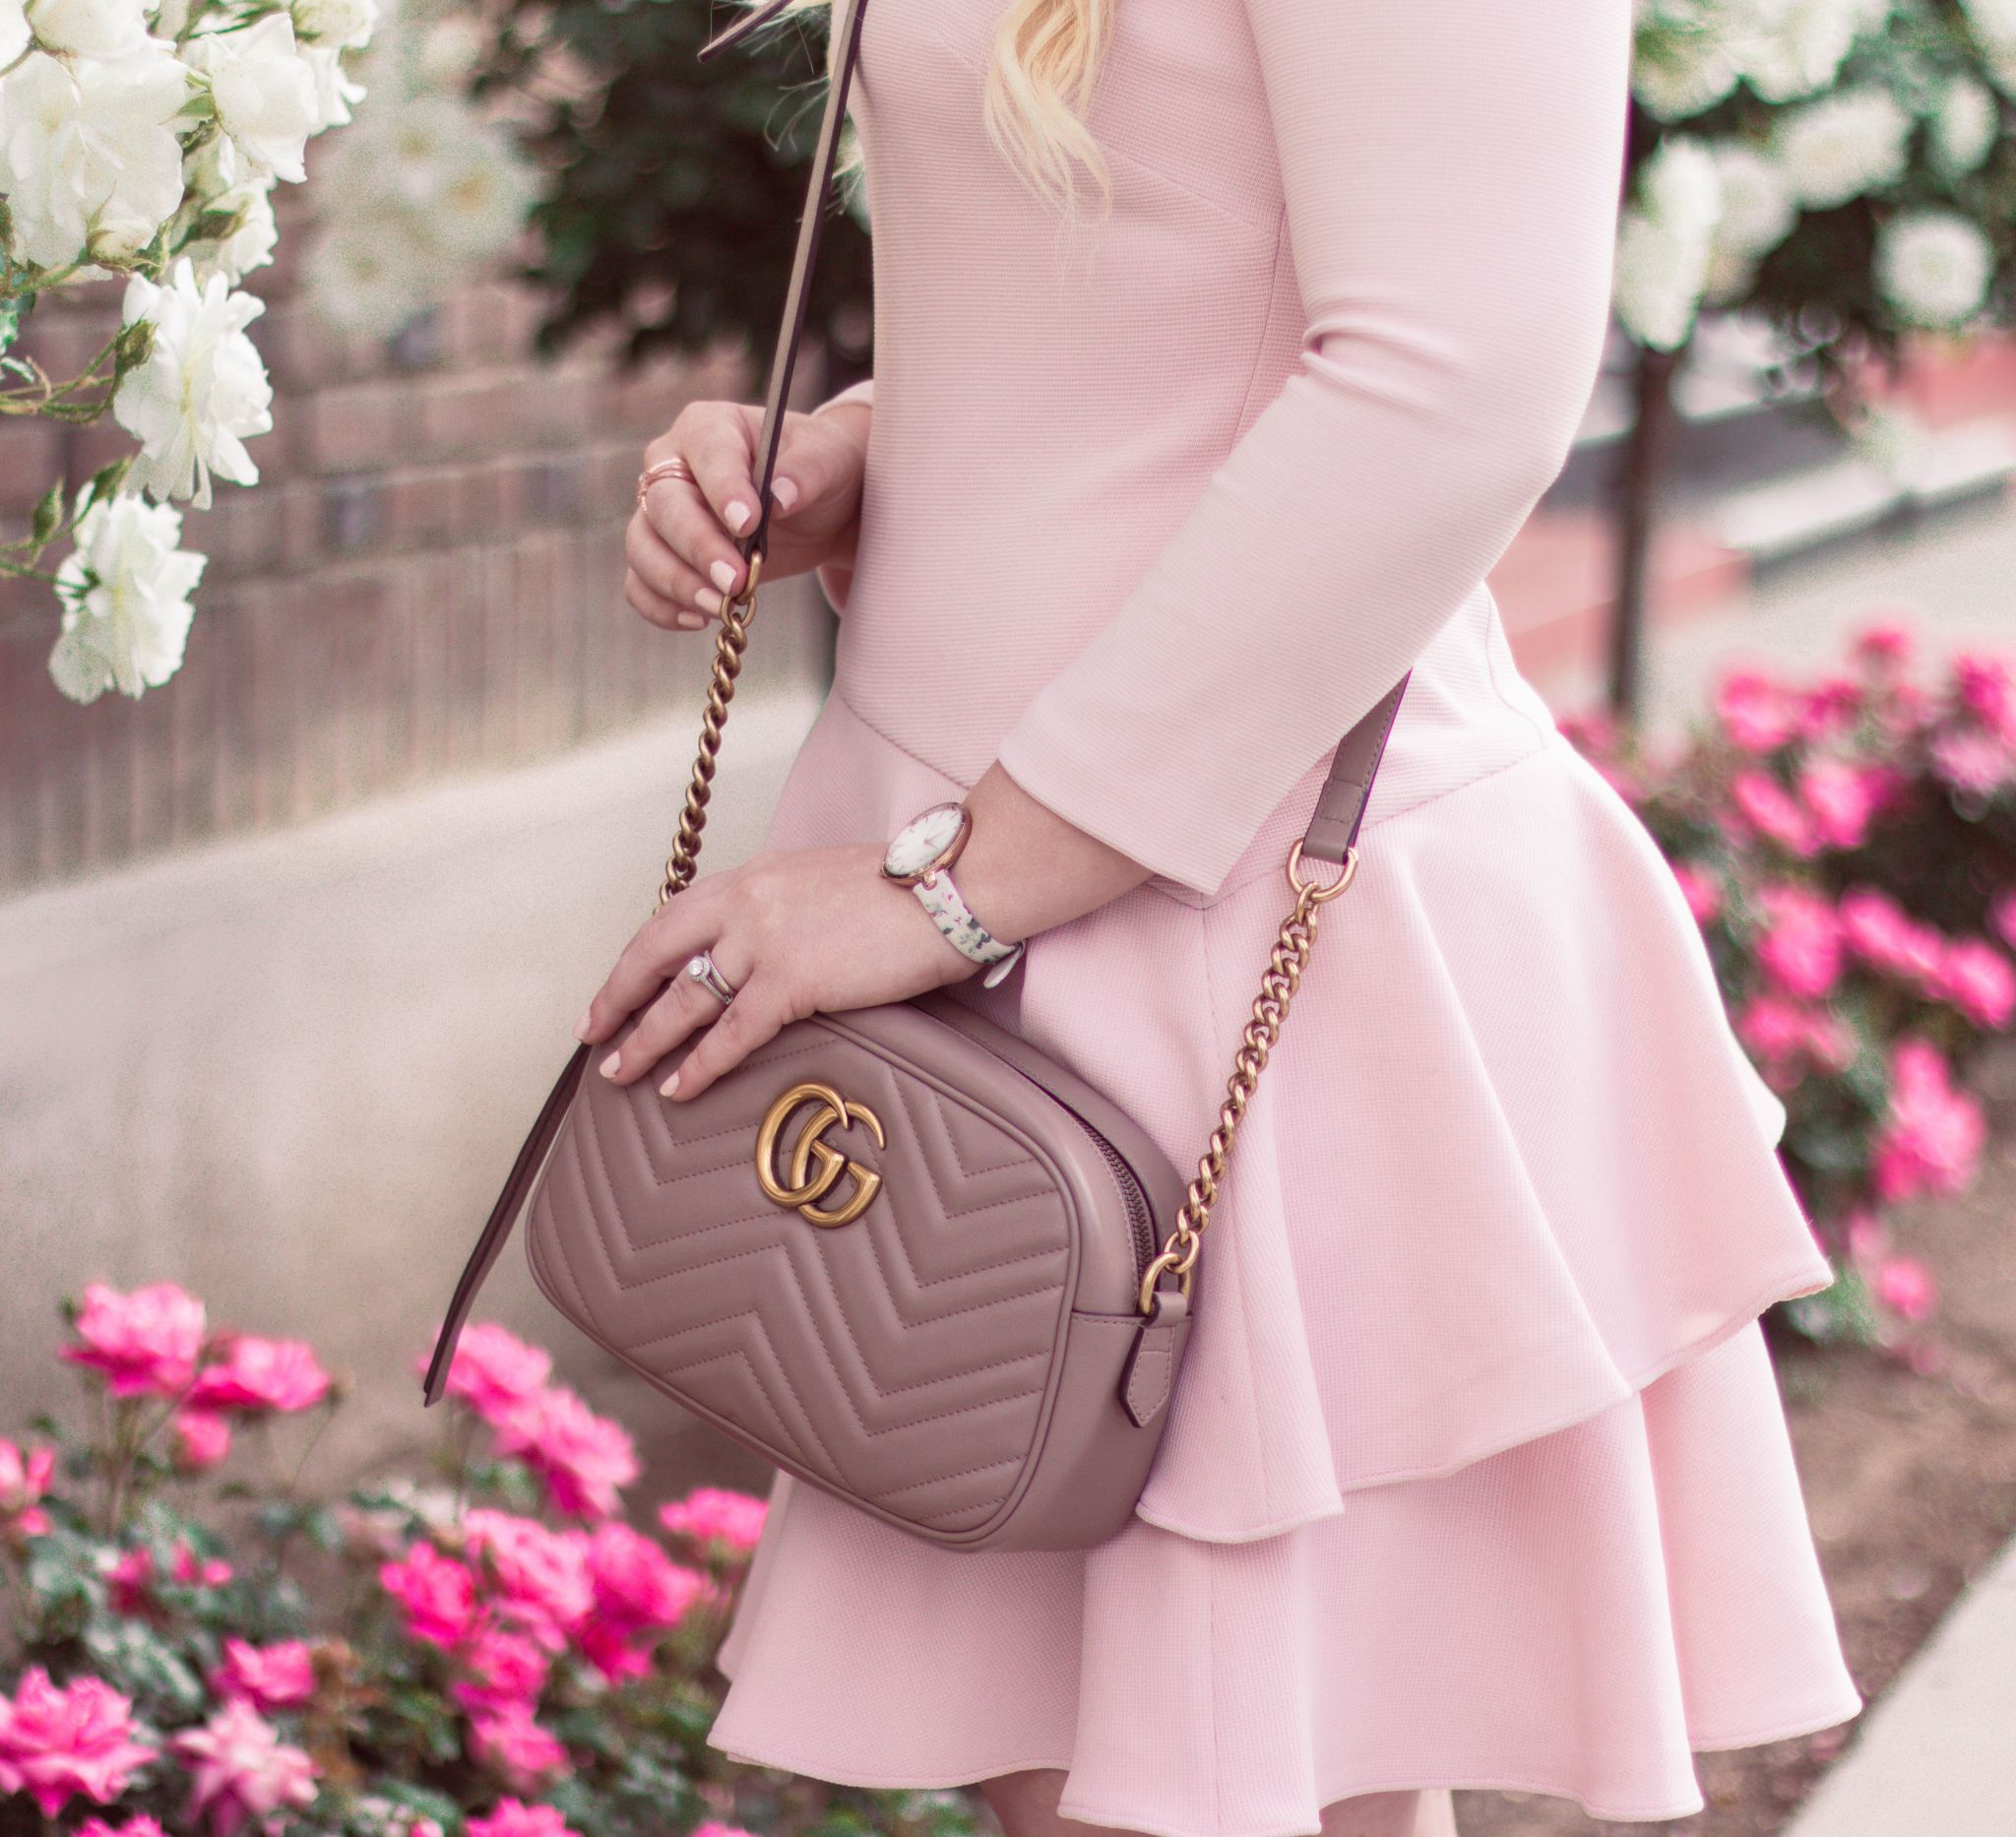 Girly Handbag Collection | Fashion Blogger's Purse Collection